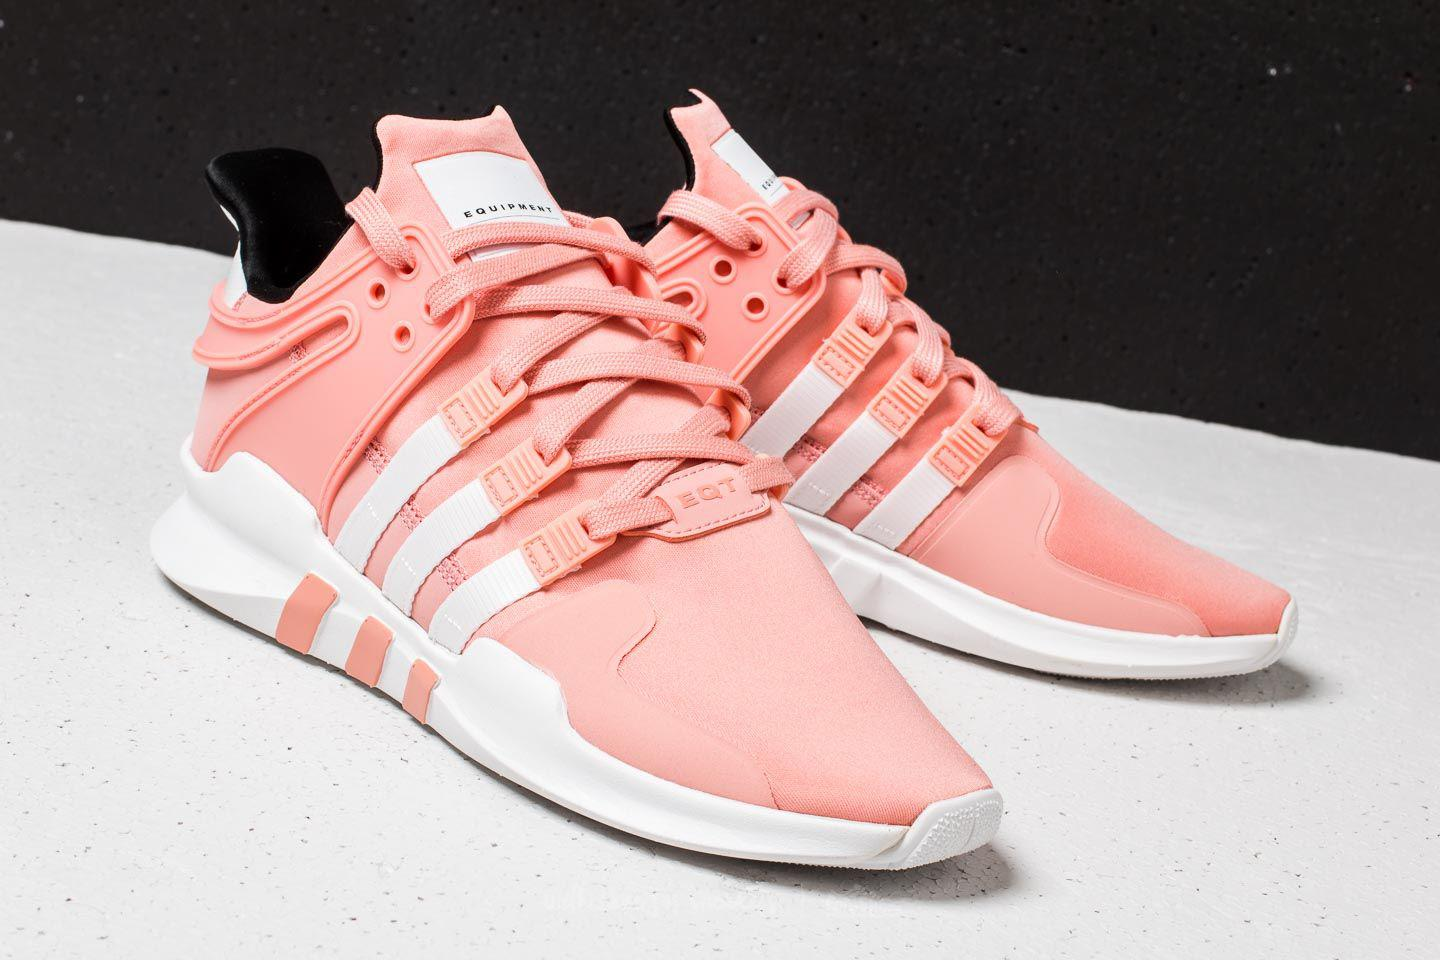 finest selection 4e8a0 5aa04 Lyst - adidas Originals Adidas Eqt Support Adv Trace Pink Ft